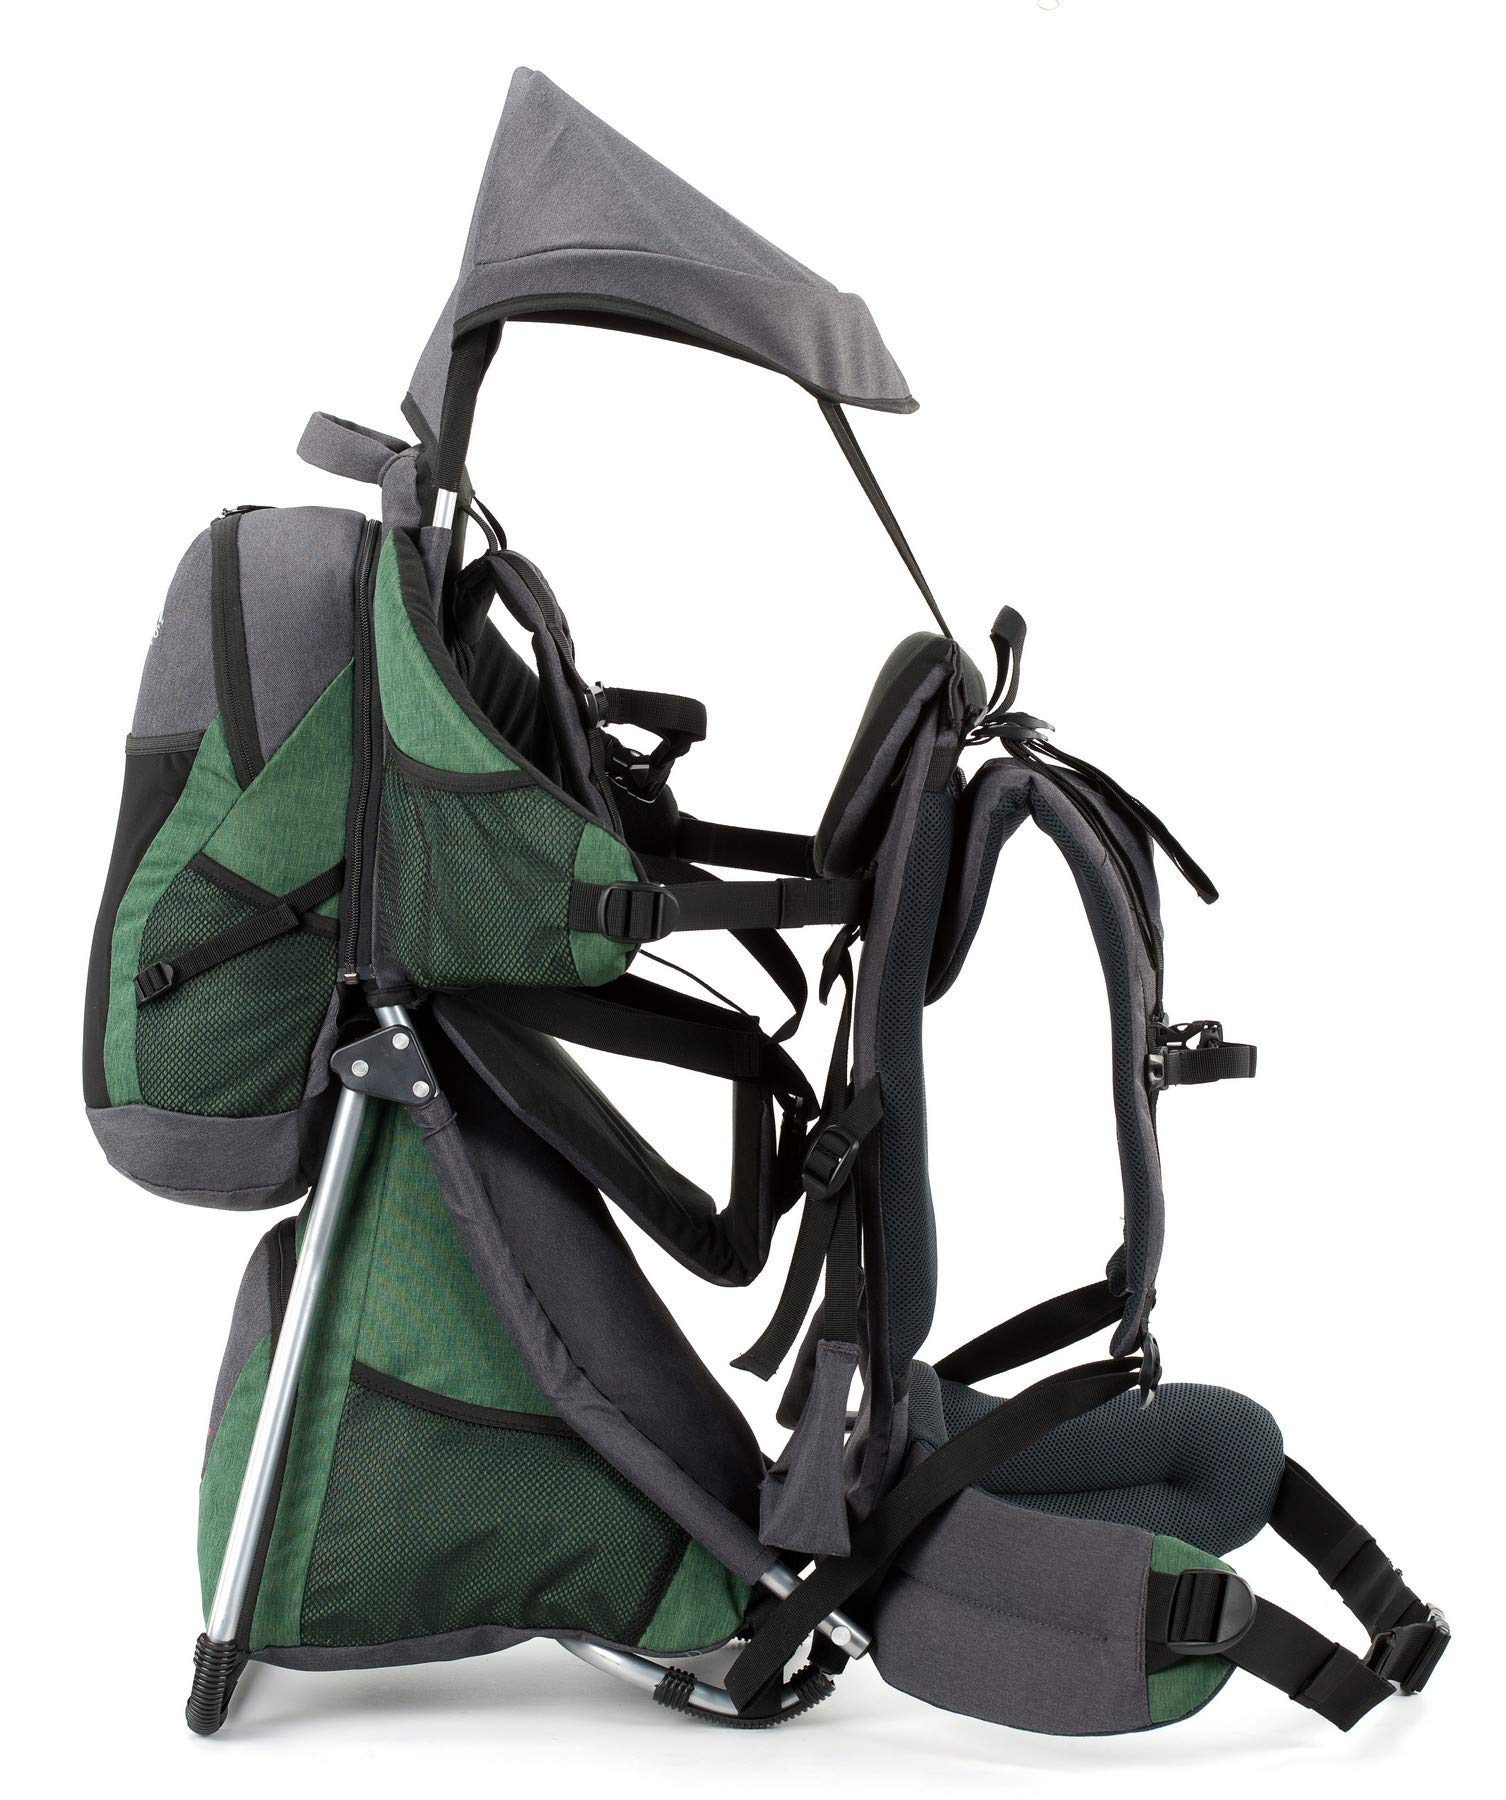 Montis HOOVER NEXUS, Child Hiking Backpack Carrier, suitable for babies & toddlers with a stable seat, low weight suitable, many extras, premium quality (GREEN) M MONTIS OUTDOOR ✅ SAFE - Practical baby carrier backpack completely adjustable with wide 5-point child harness for children weighing up to 25 kg instead of 20 kg. Thanks to height-adjustable seat cushions, padded side panels, a rear headrest, and forehead cushions, it is ideal for hiking in the city or in the country. With reflective elements on the front and back for night protection. ✅ COMFORTABLE - Suitable for both parents thanks to adjustable shoulder straps, a 14 cm adjustable chest strap with a vertical position for women's ergonomics, and reinforced back area (incl. ventilation system) with load distribution to the pelvic belts. We use materials of the highest quality and focus on flawless manufacturing. ✅ SPACIOUS - Removable additional backpack 10L and seat pocket with 18L volume provide the carrier with additional storage space for water bottles, rain protection, sun protection, changing mat and much more. In addition, the straps of the baby carrier are equipped with small quick-access pockets to avoid the need of constantly taking off the carrier. 3